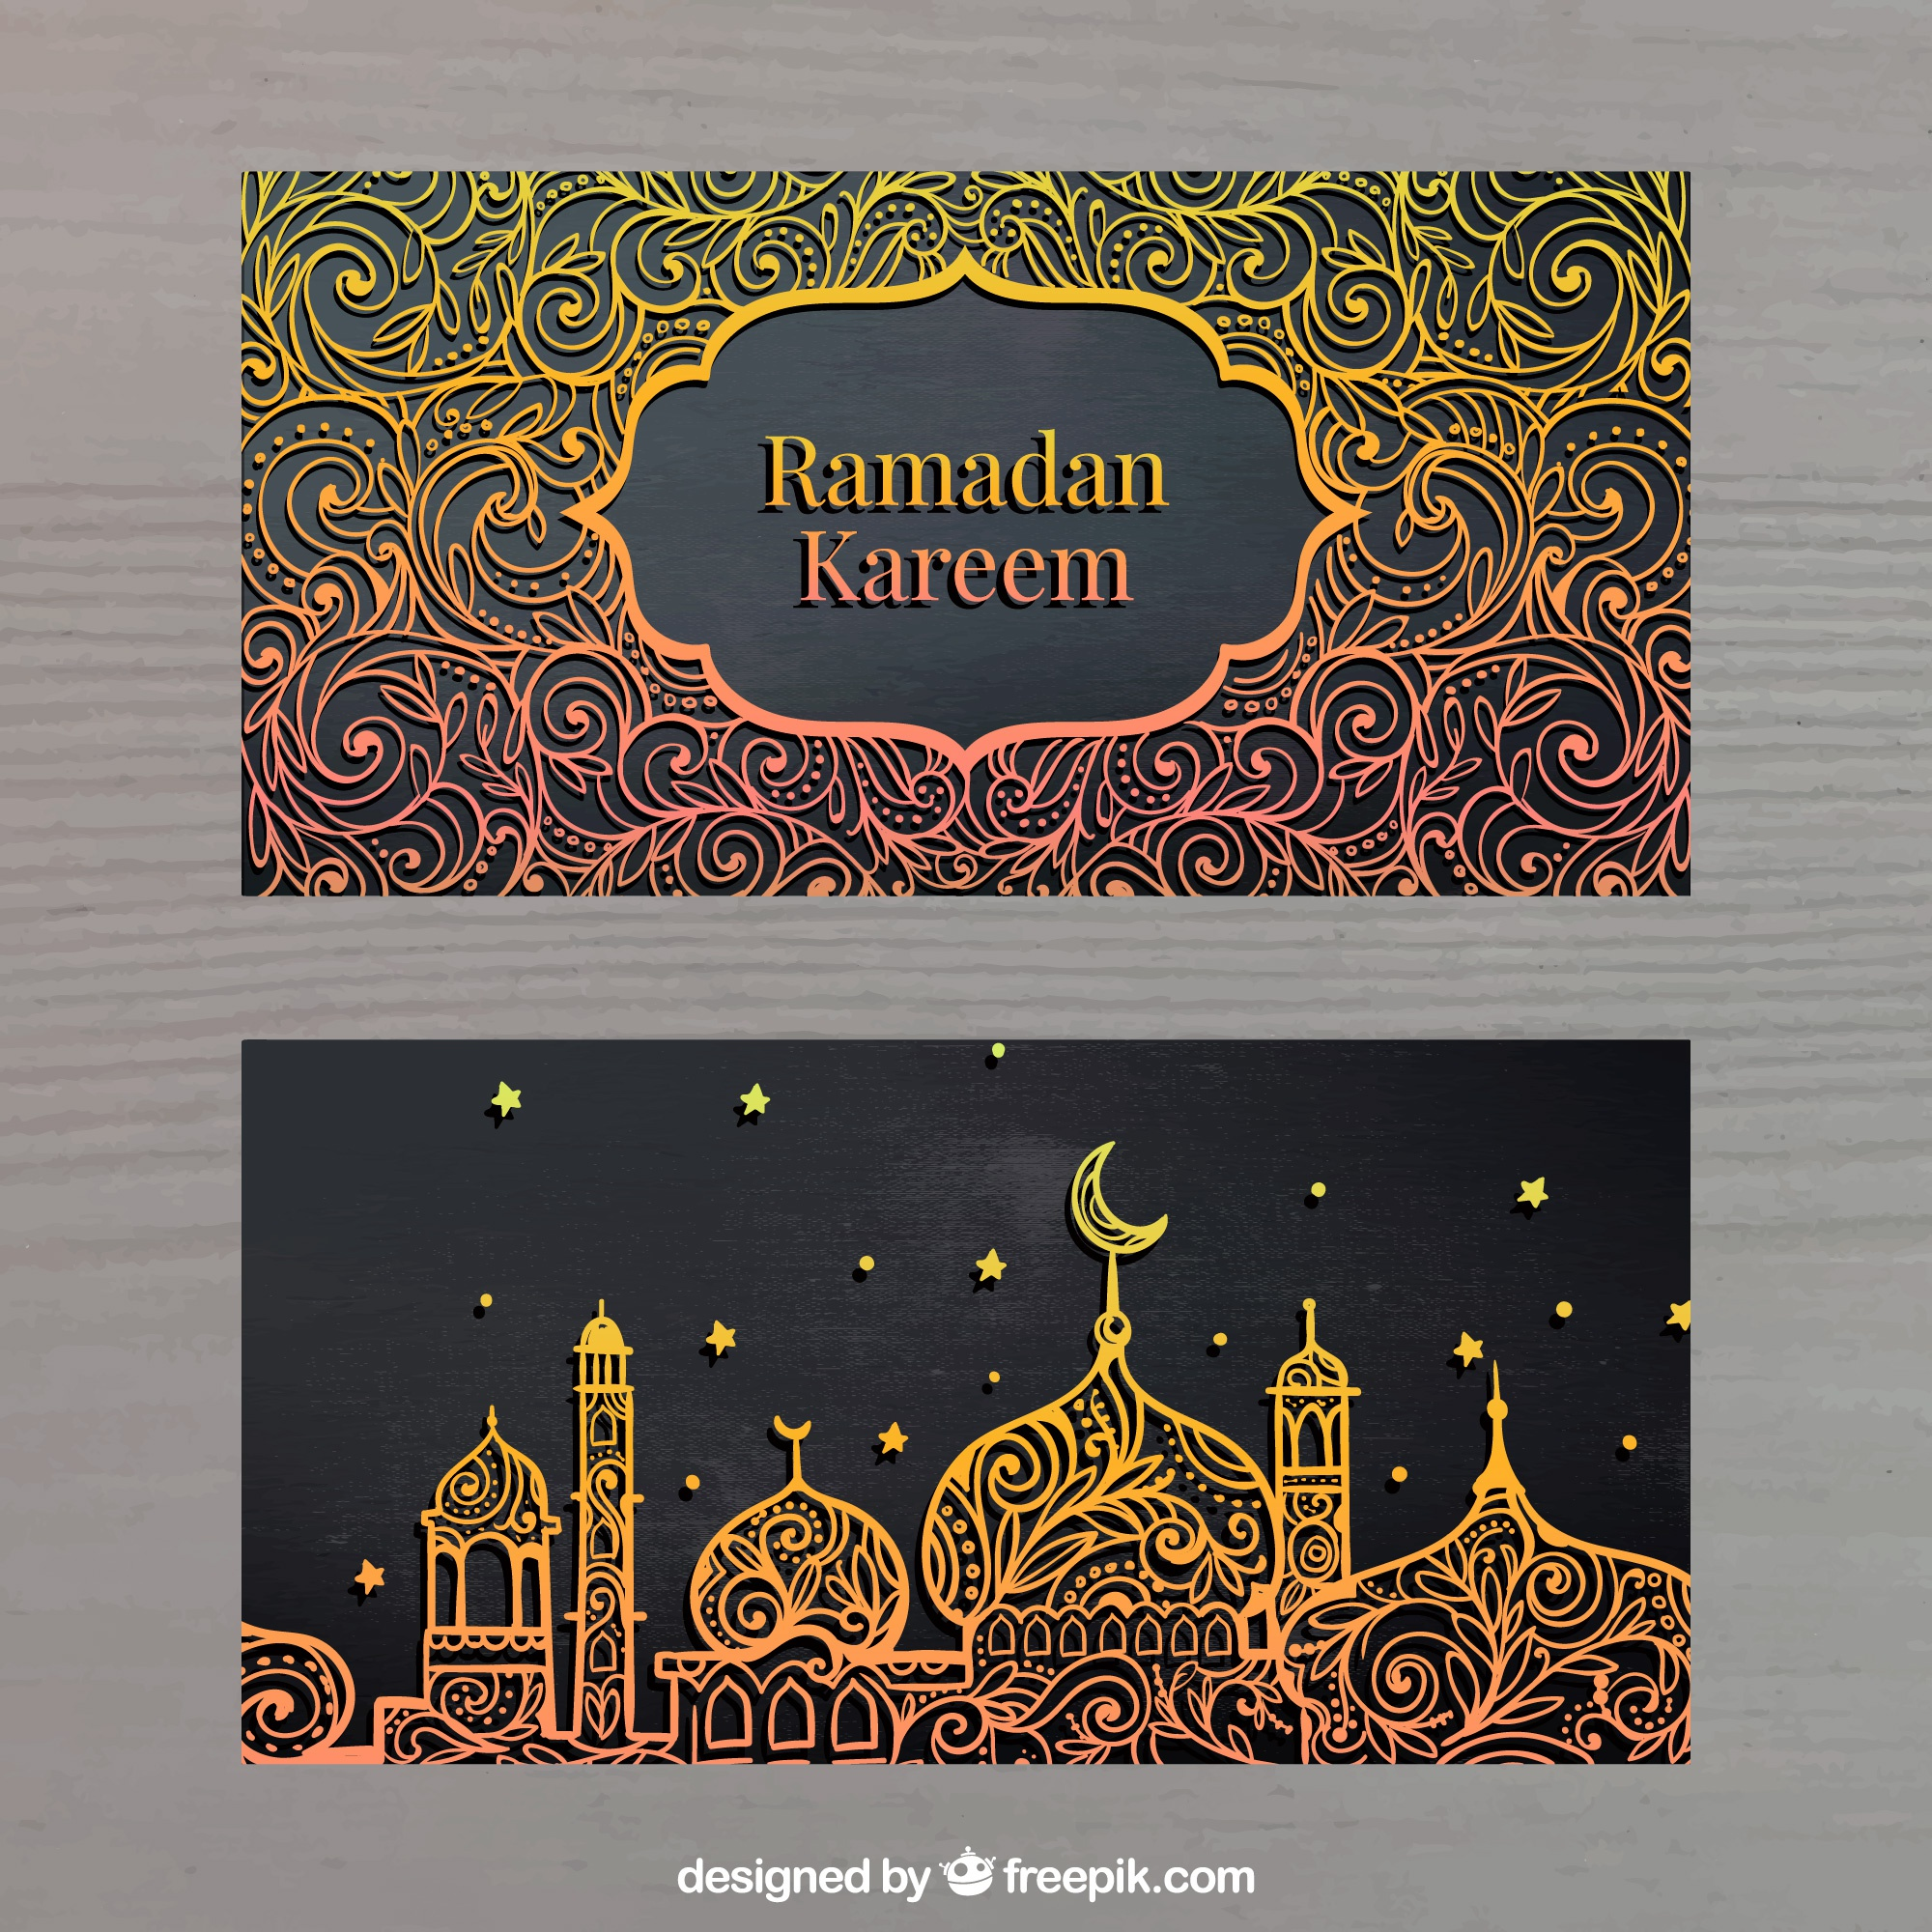 Golden banners of ramadan kareem